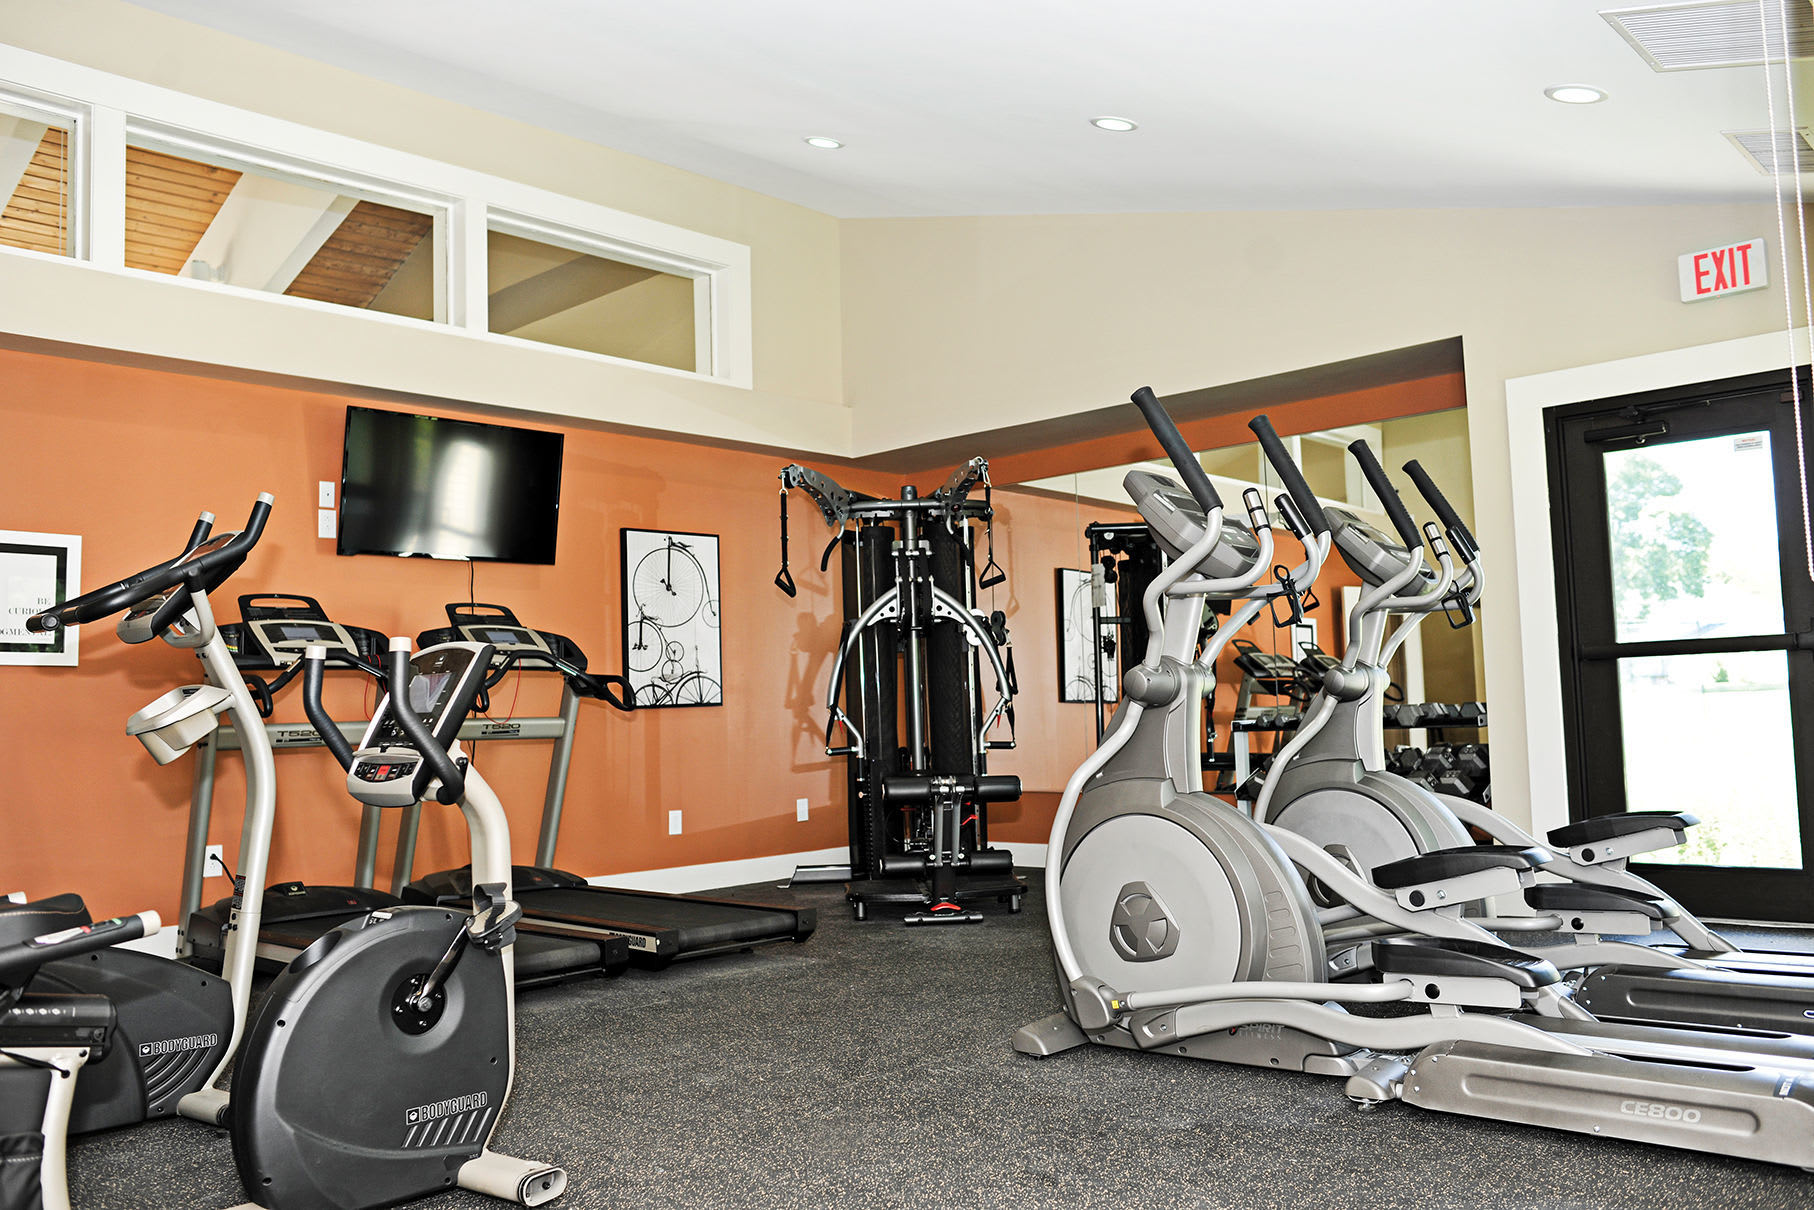 Our Brand New Fitness Center at Penbrooke Meadows Apartments in Penfield, NY